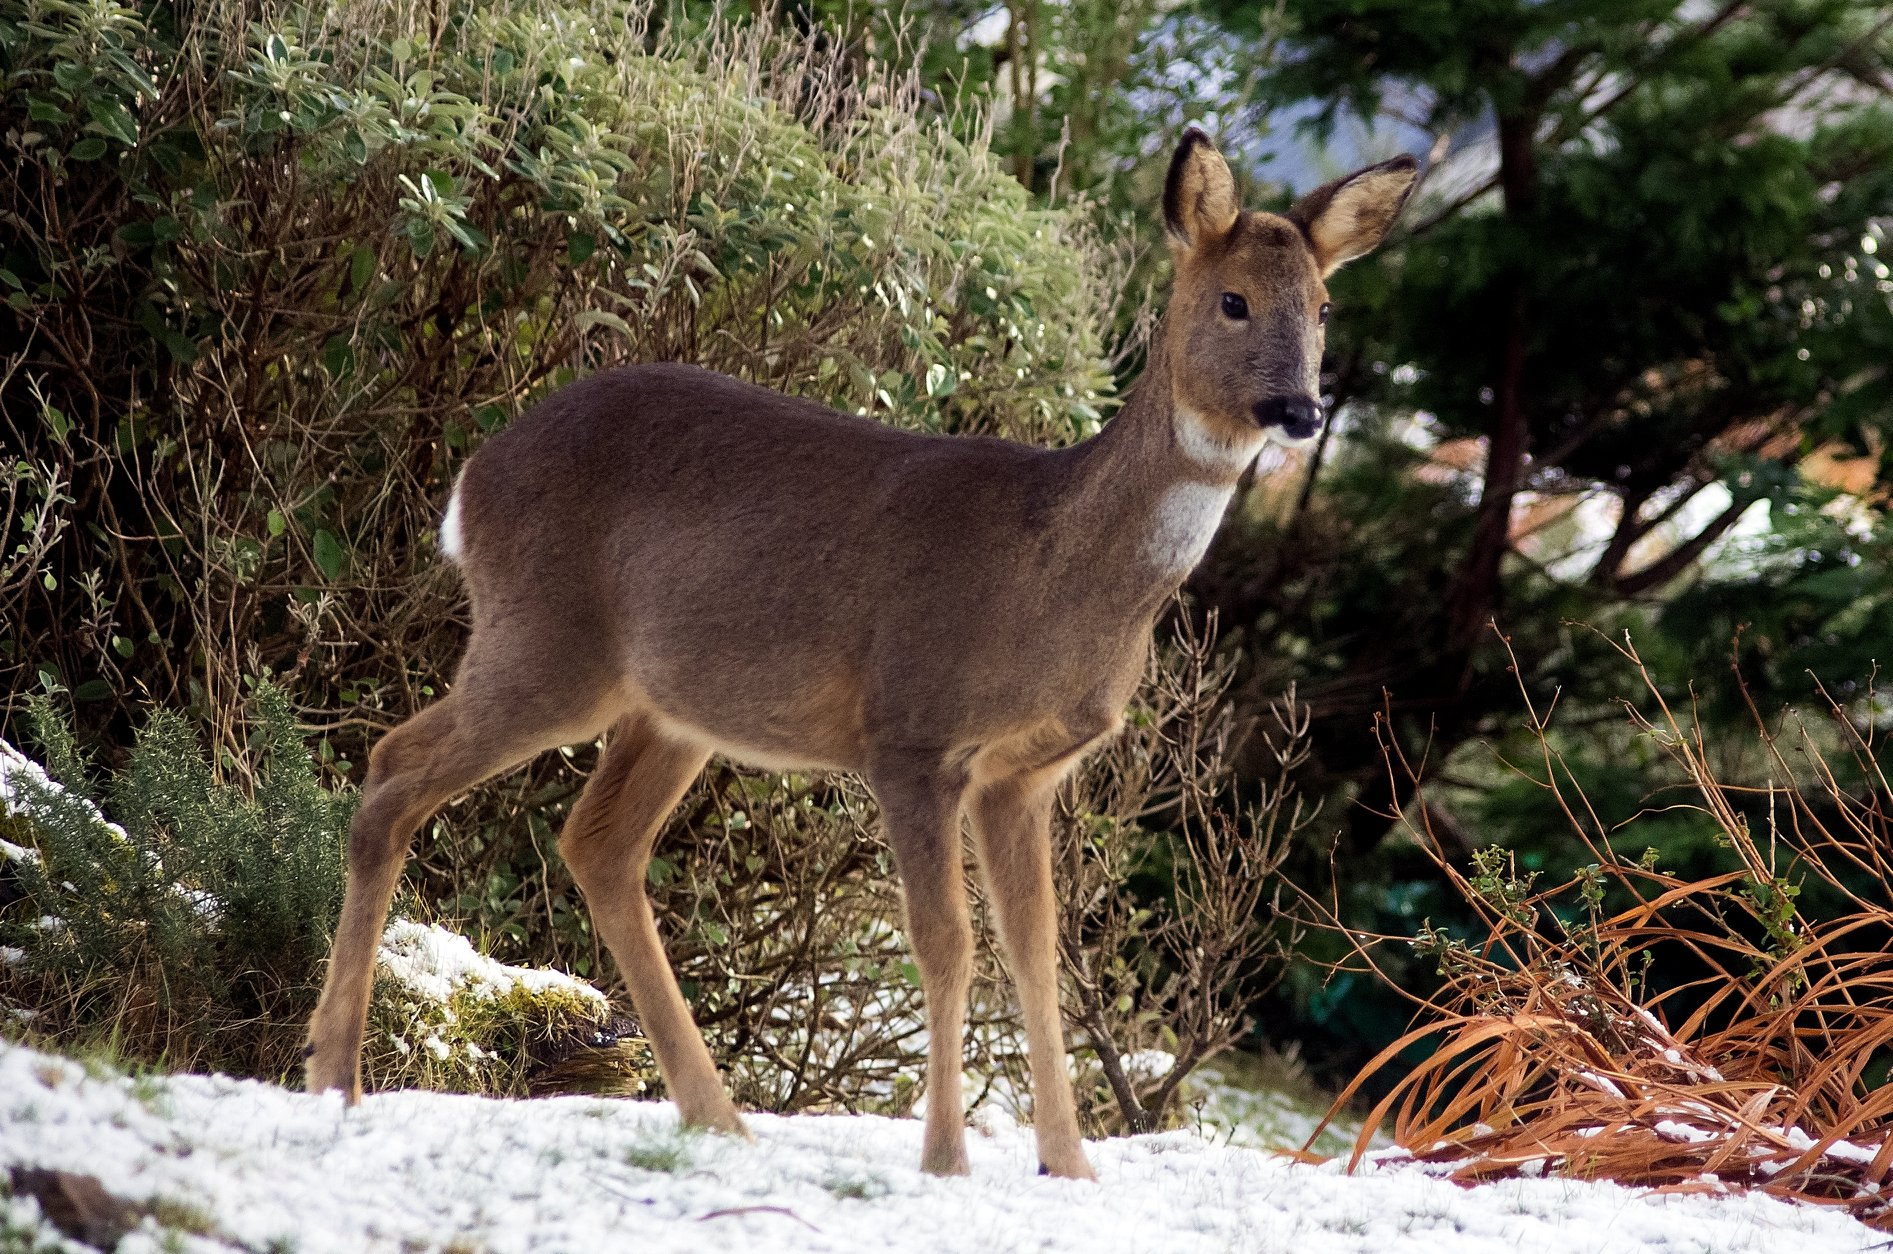 Roe deer browsing in the garden.